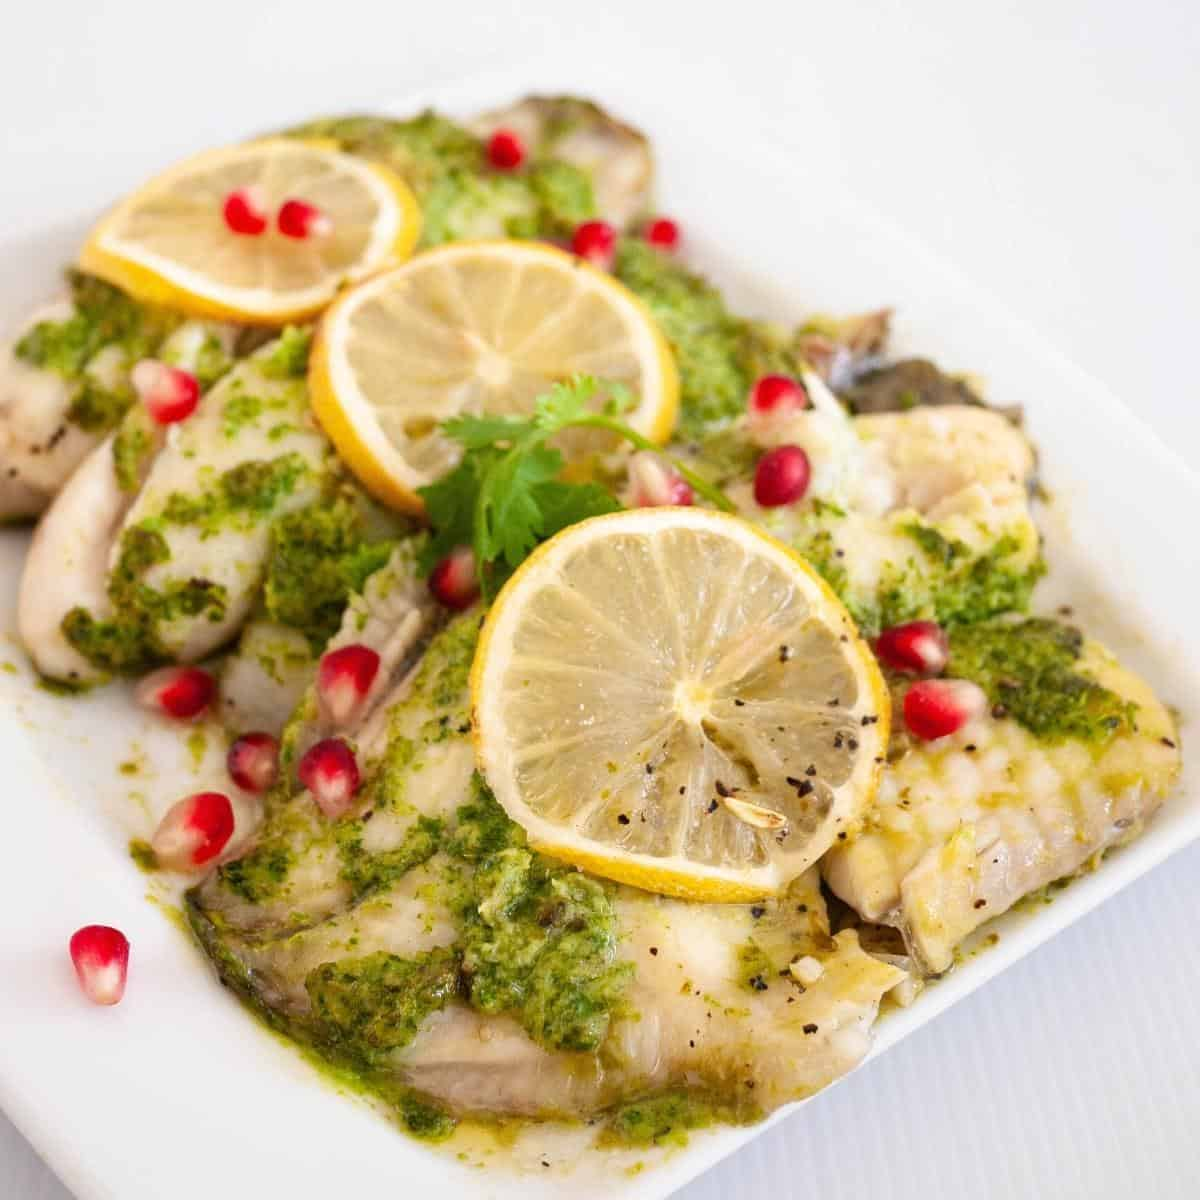 Baked fish served on a platter.